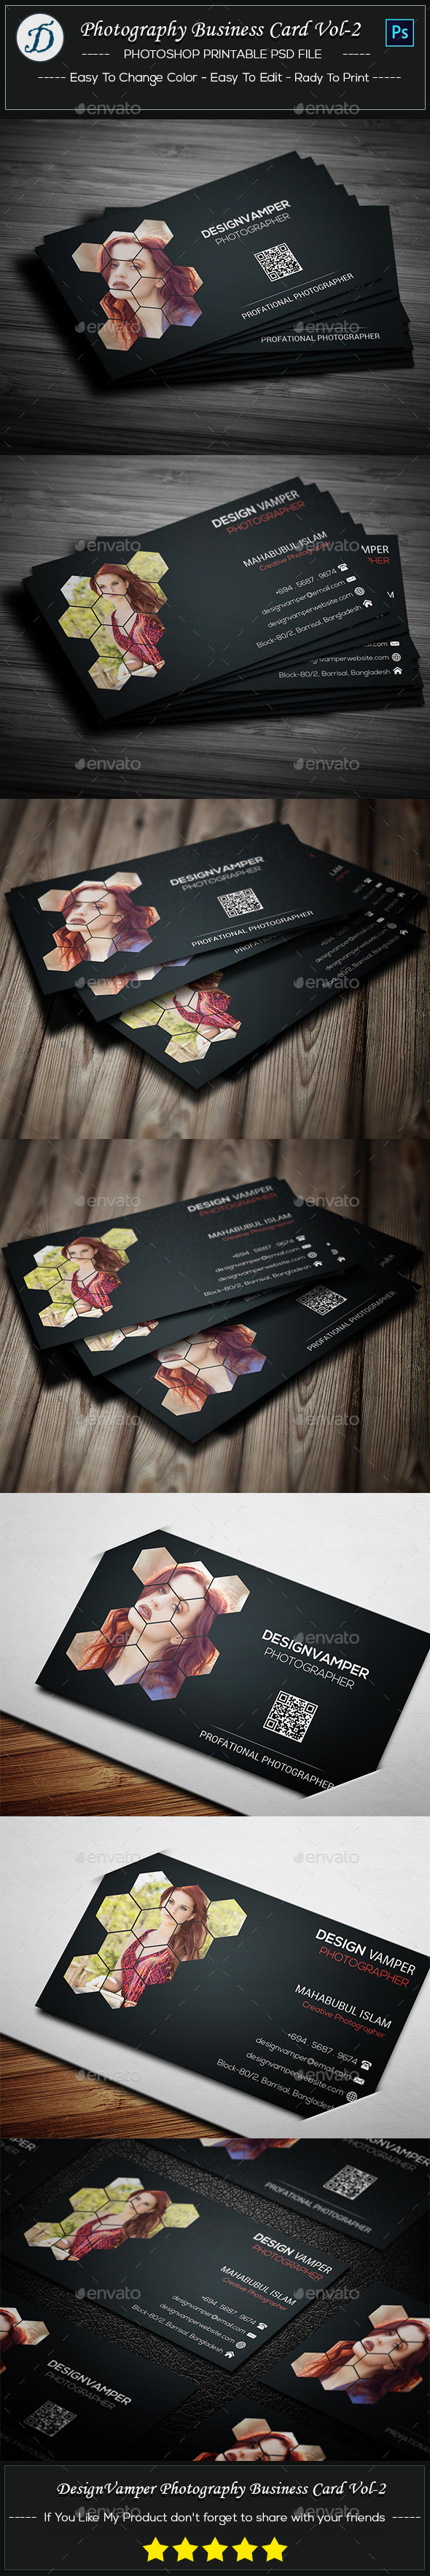 Photographer Business Card Vol-2 - Creative Business Cards